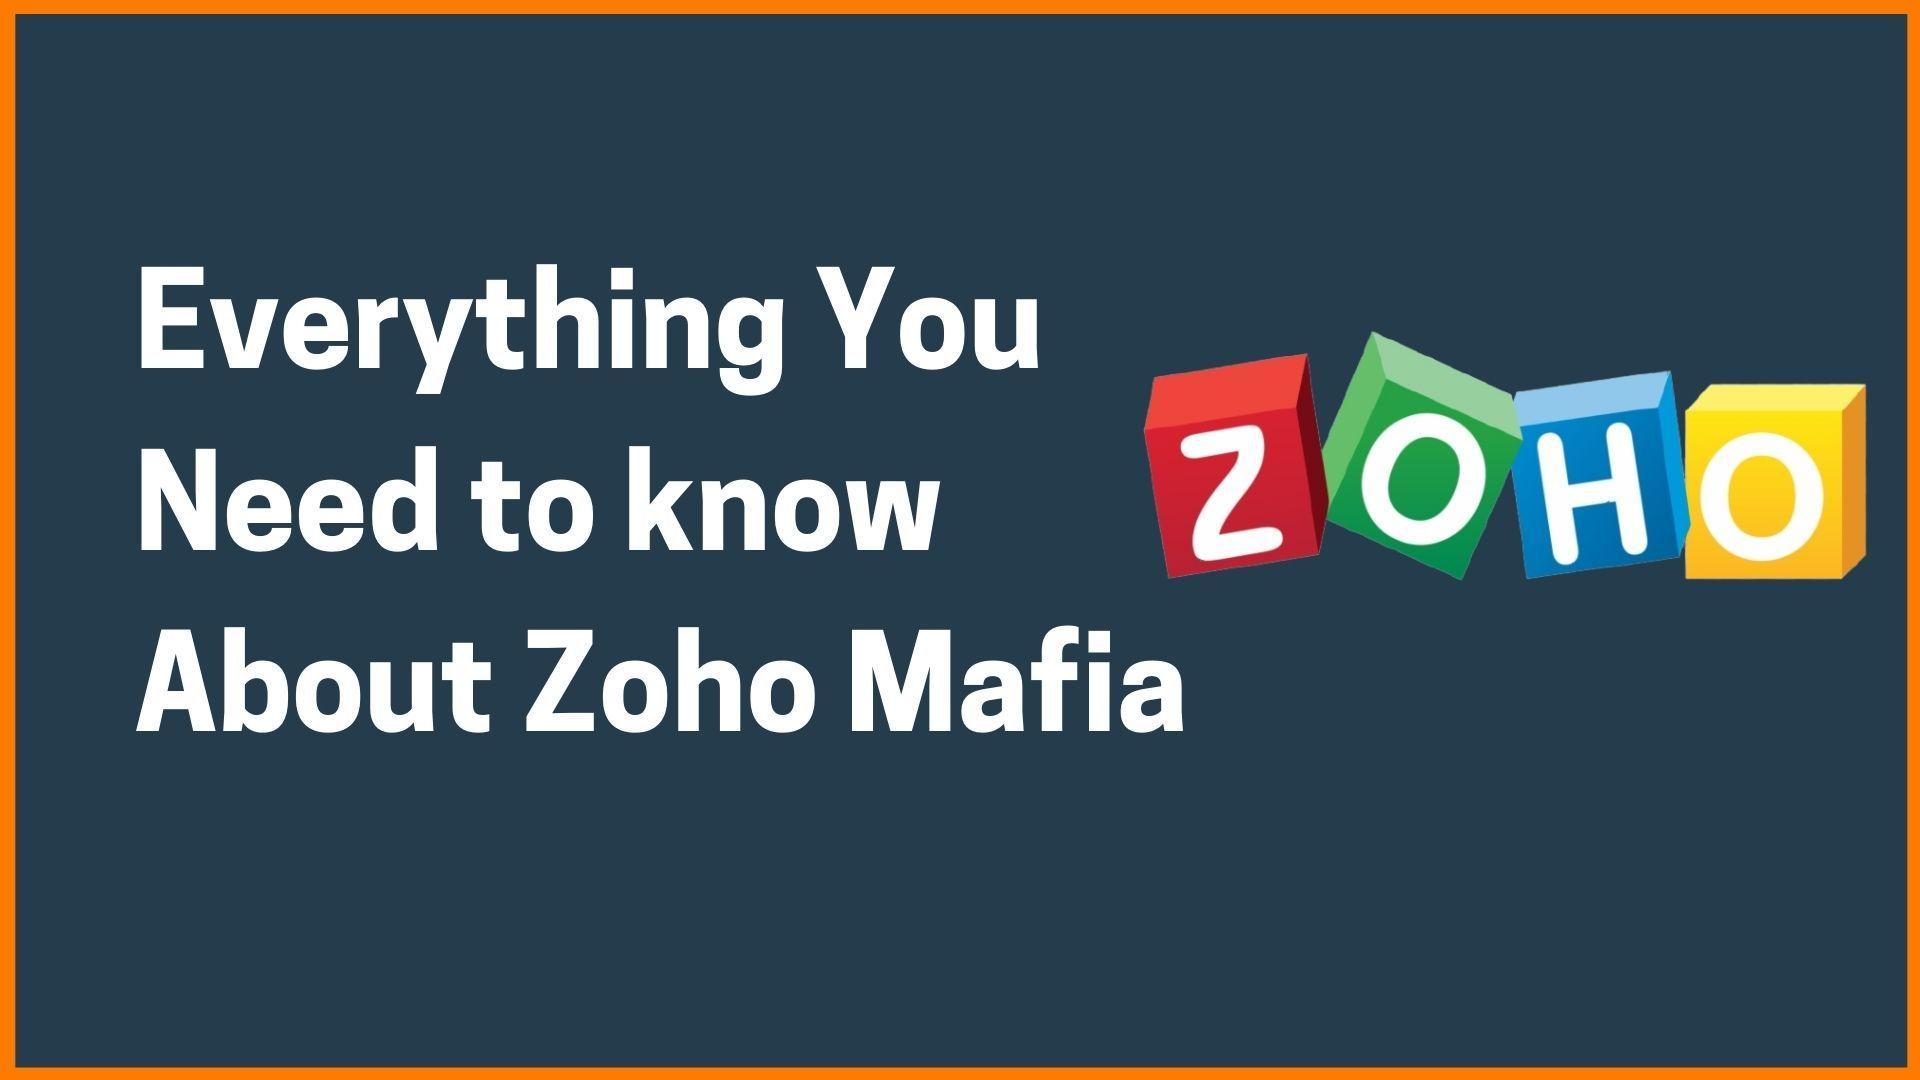 Everything You Need to know About Zoho Mafia